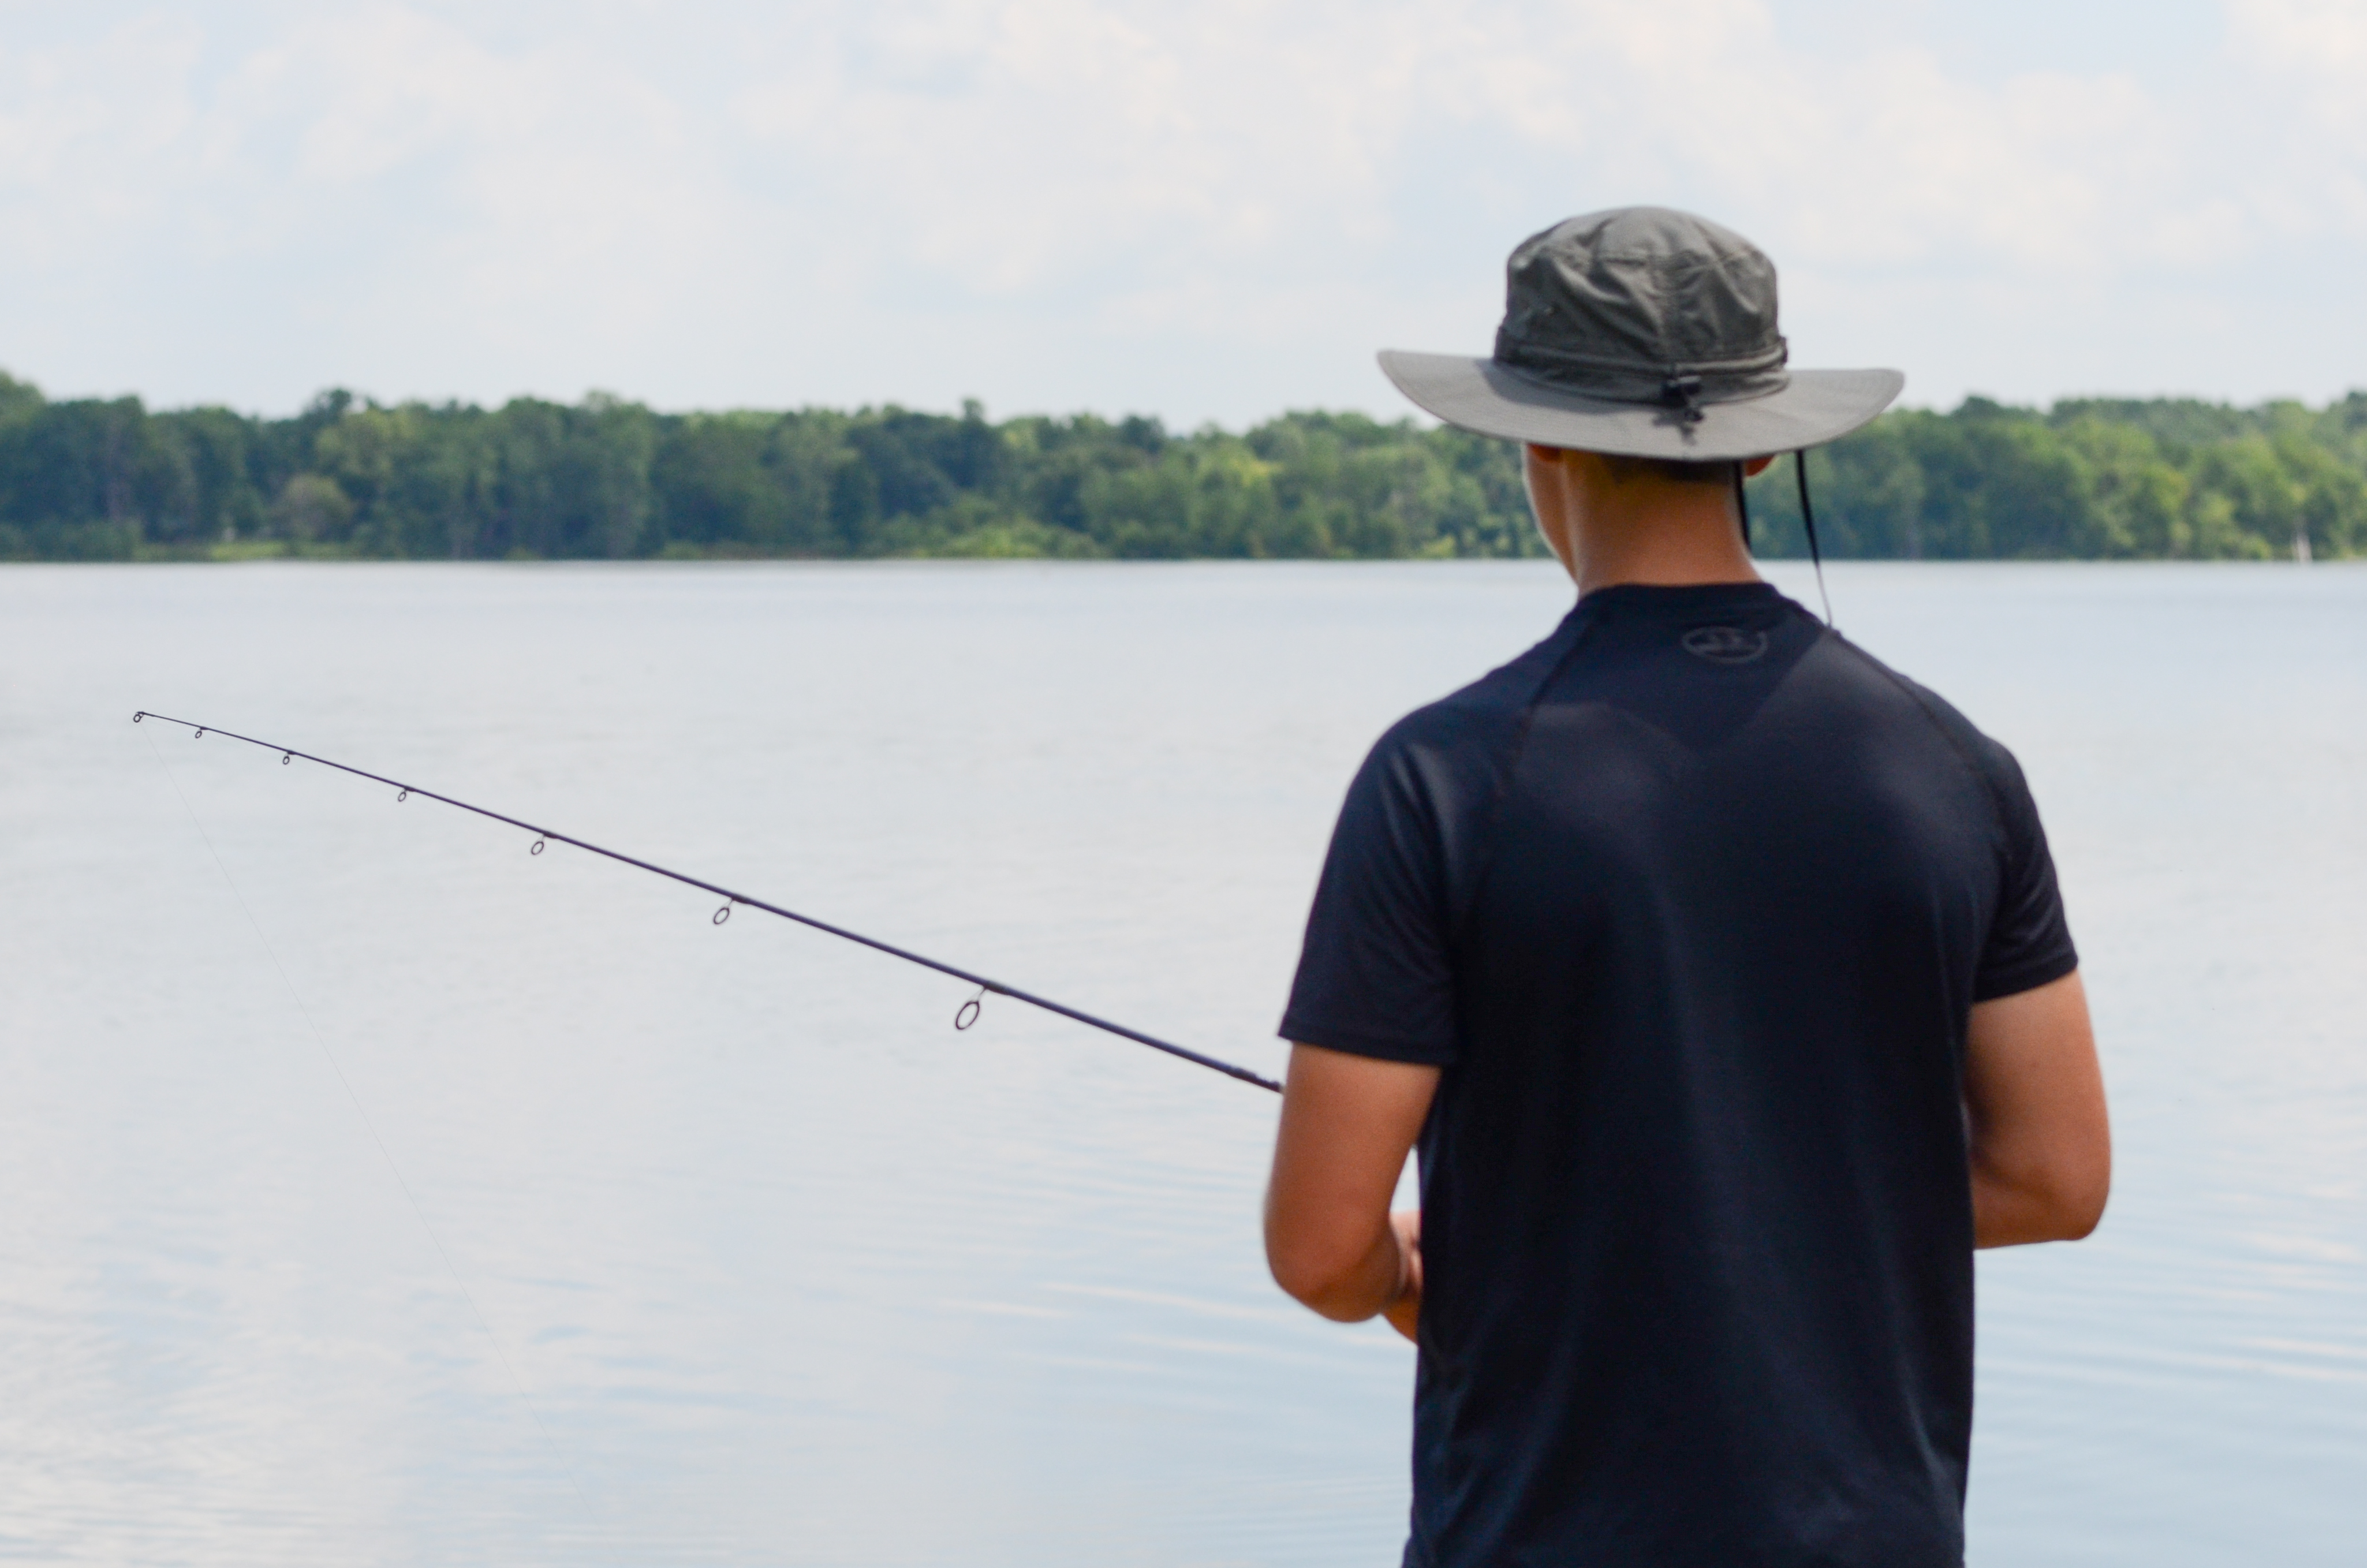 Fishing at Hoover Reservoir